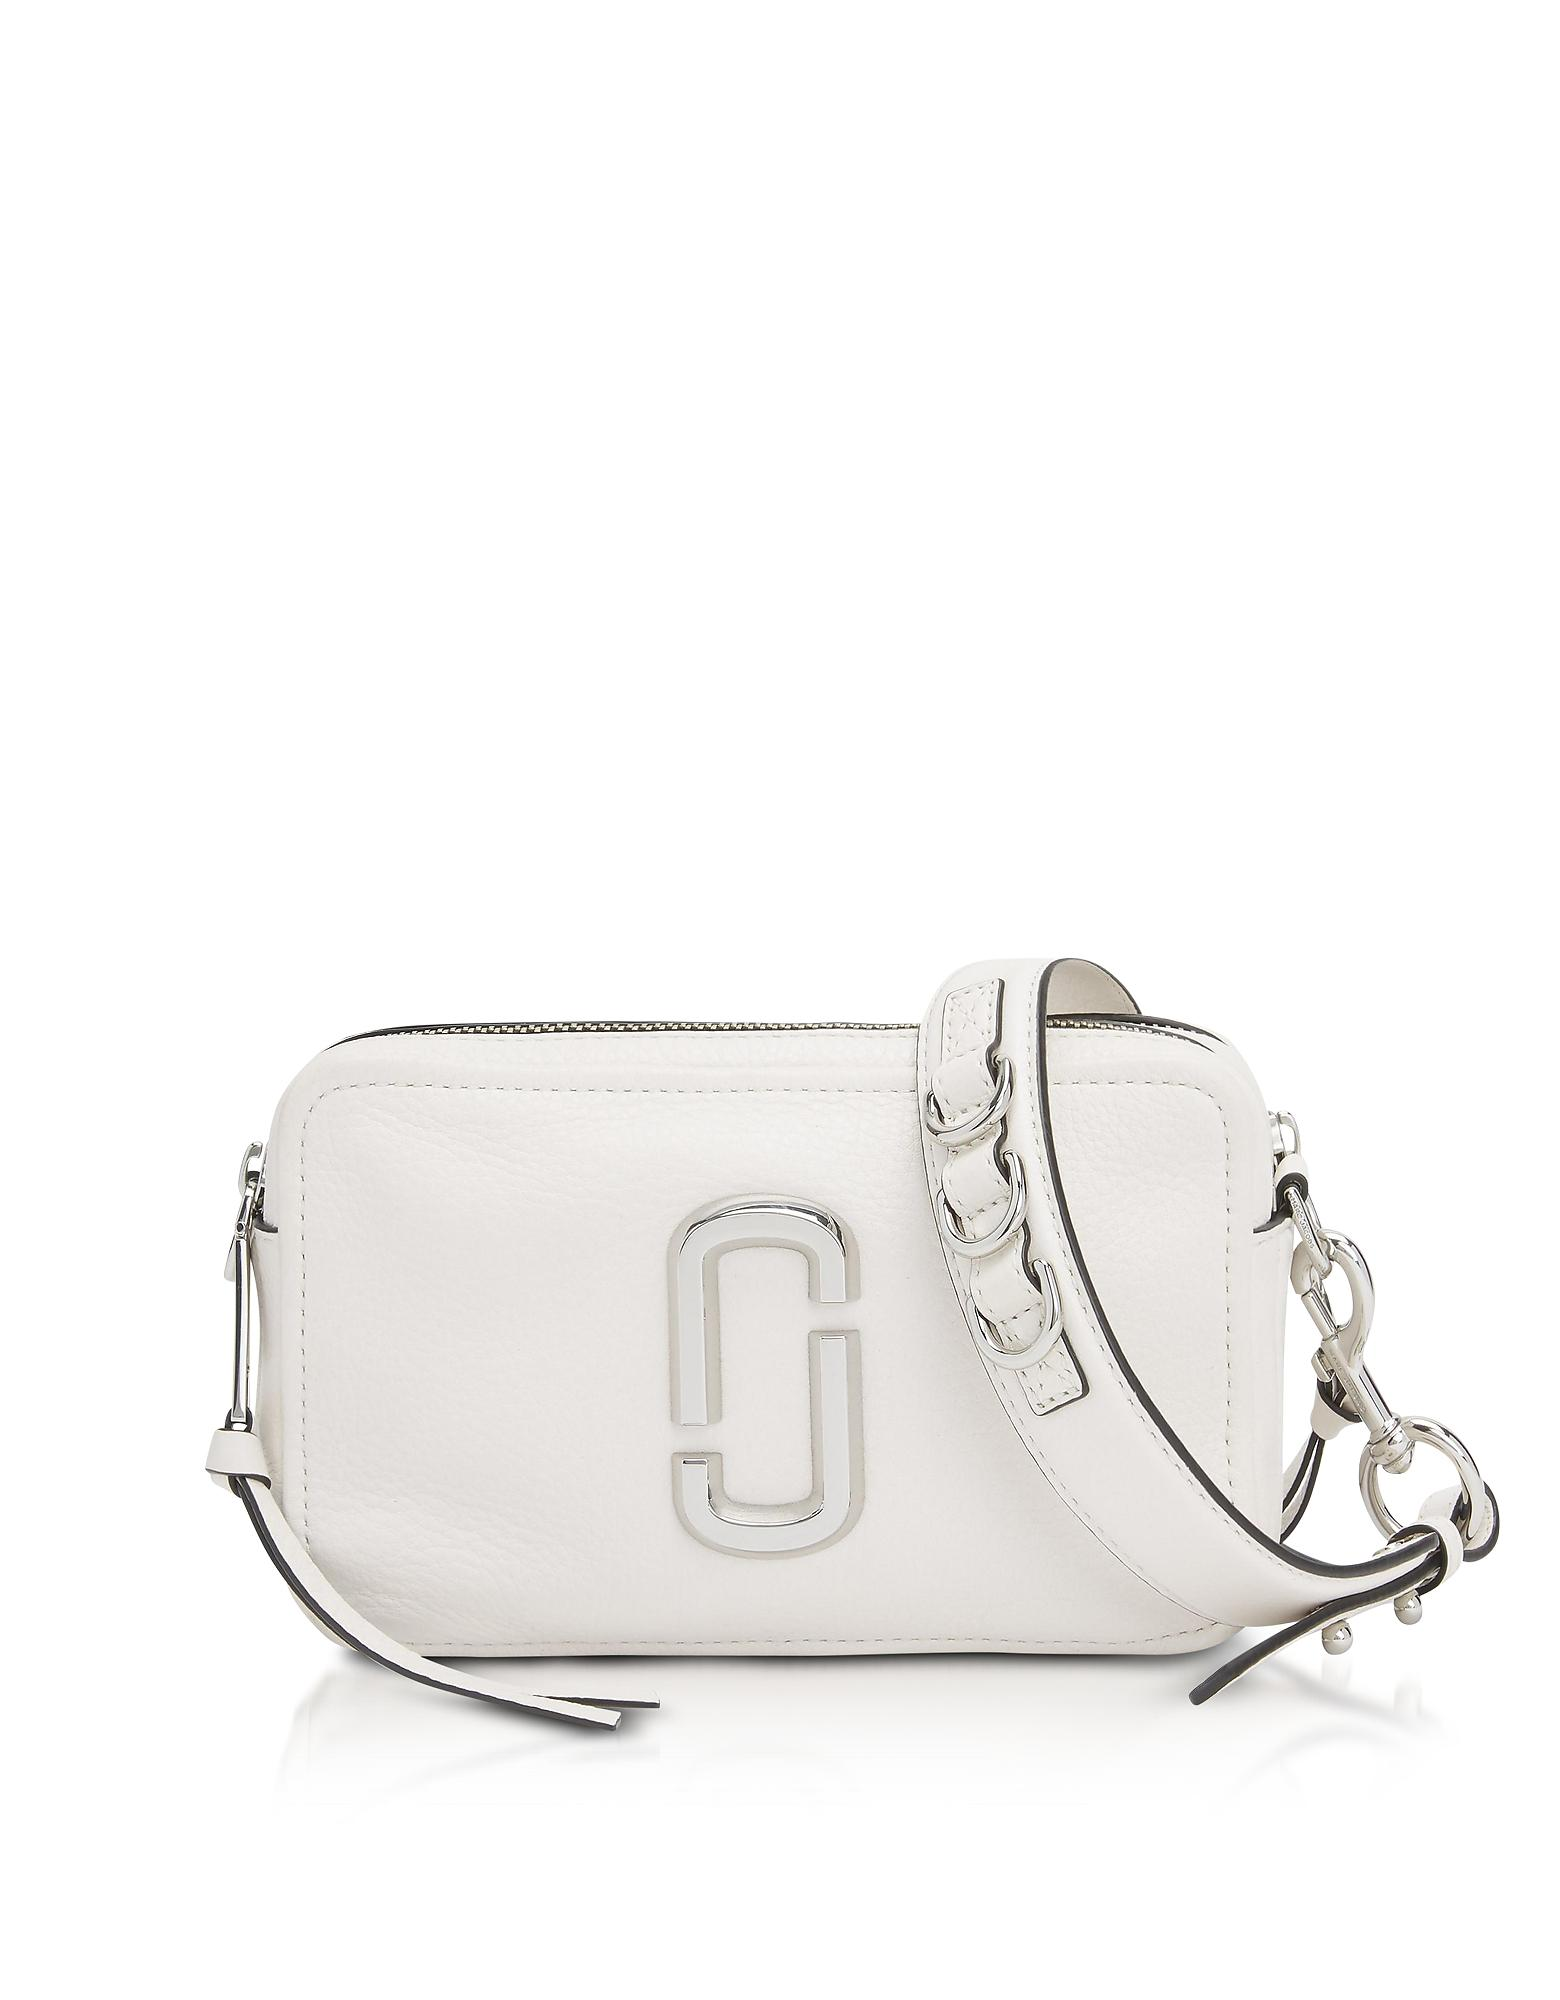 Lyst - Marc Jacobs The Softshot 21 Shoulder Bag in White - Save 22% c1d7c15aa02a8